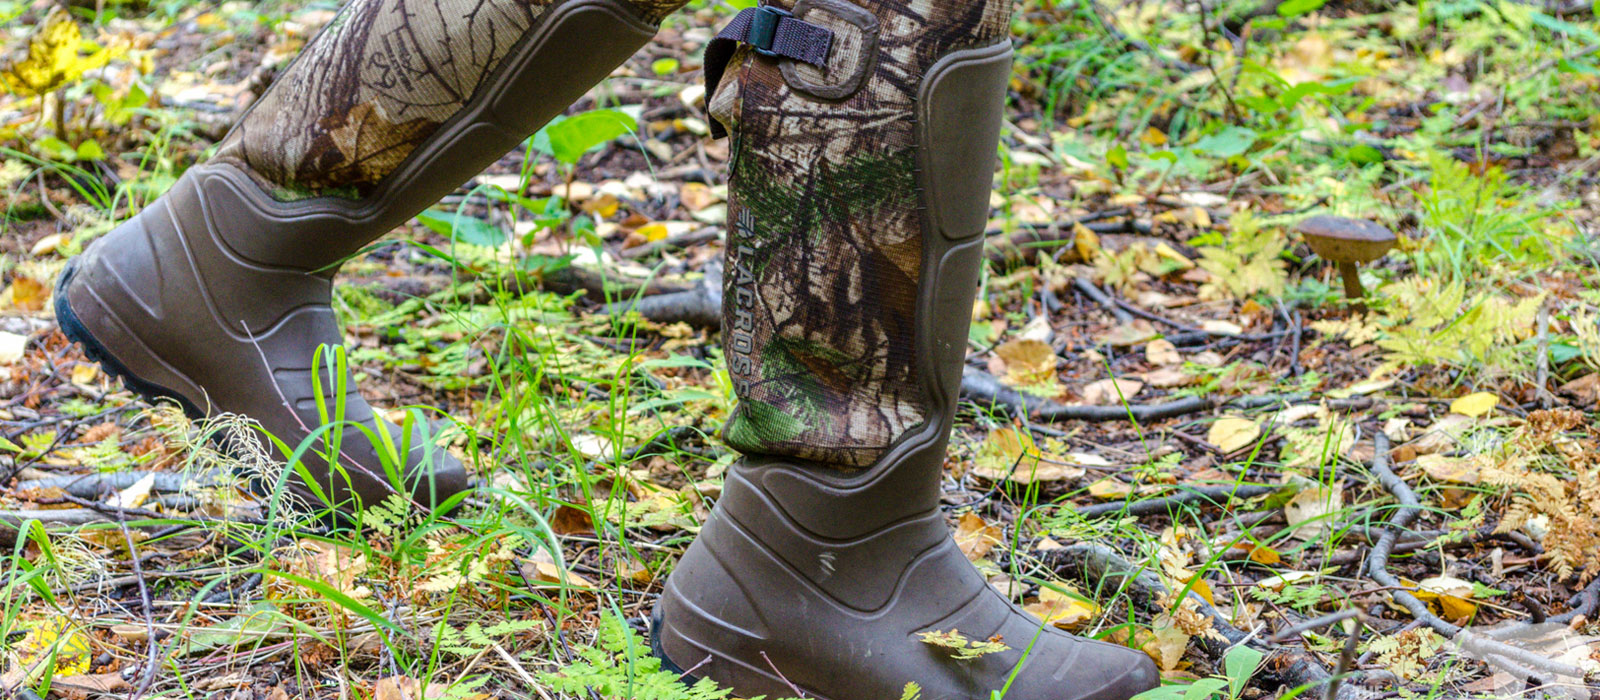 The Boot Box, Work, Western, & Hunting Boots, Clothing, Optics ...